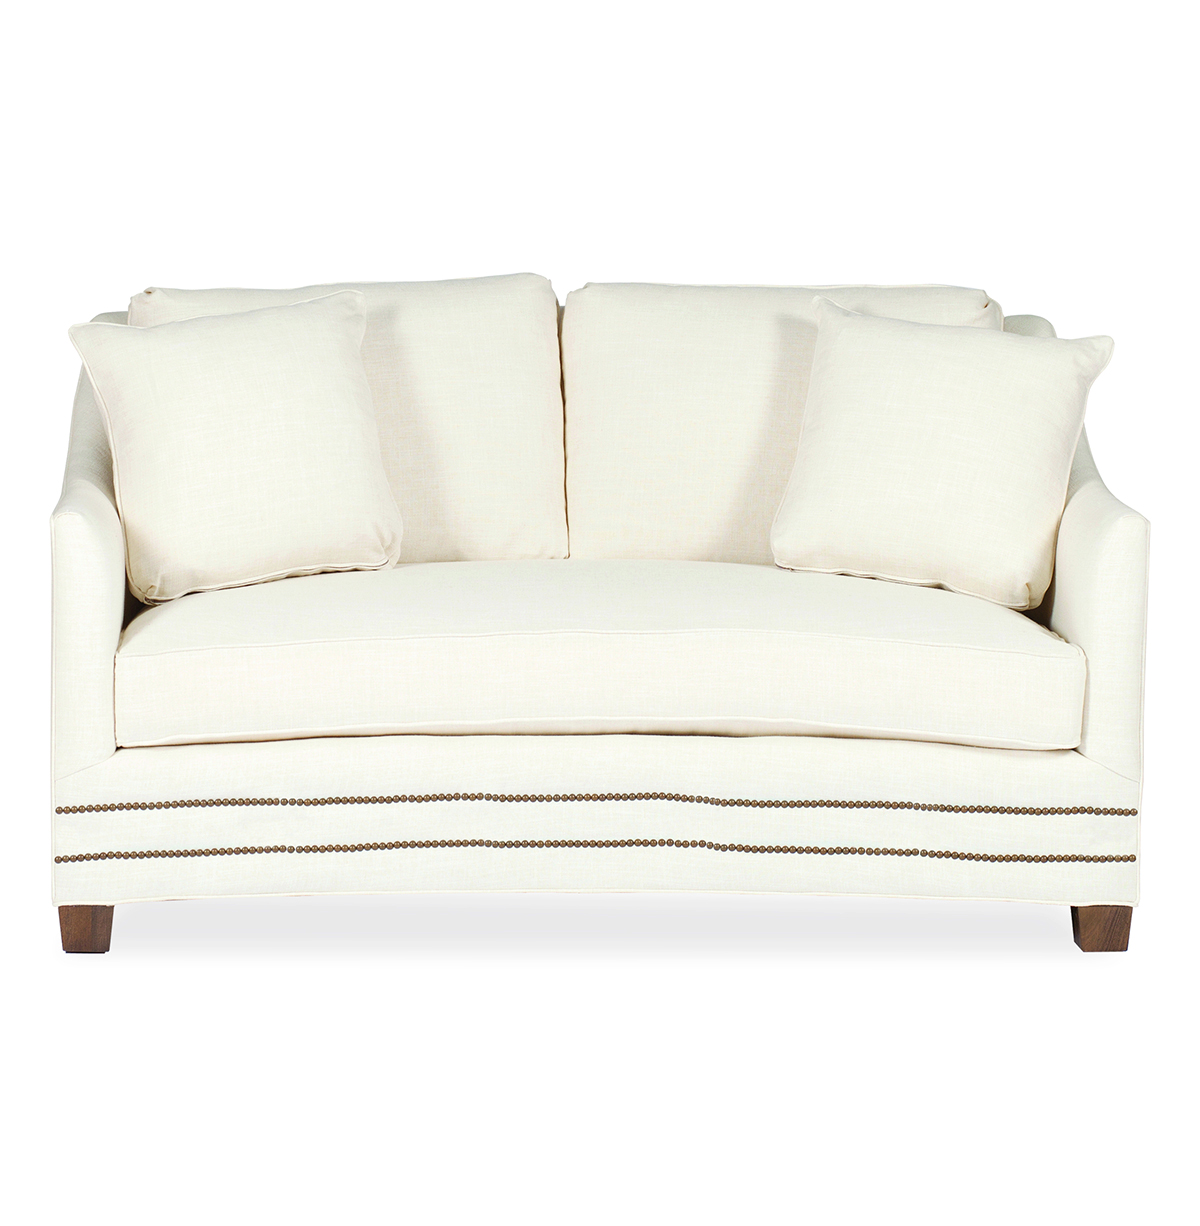 Baldwin Hollywood Regency Curved Front Settee - Straight Nailhead